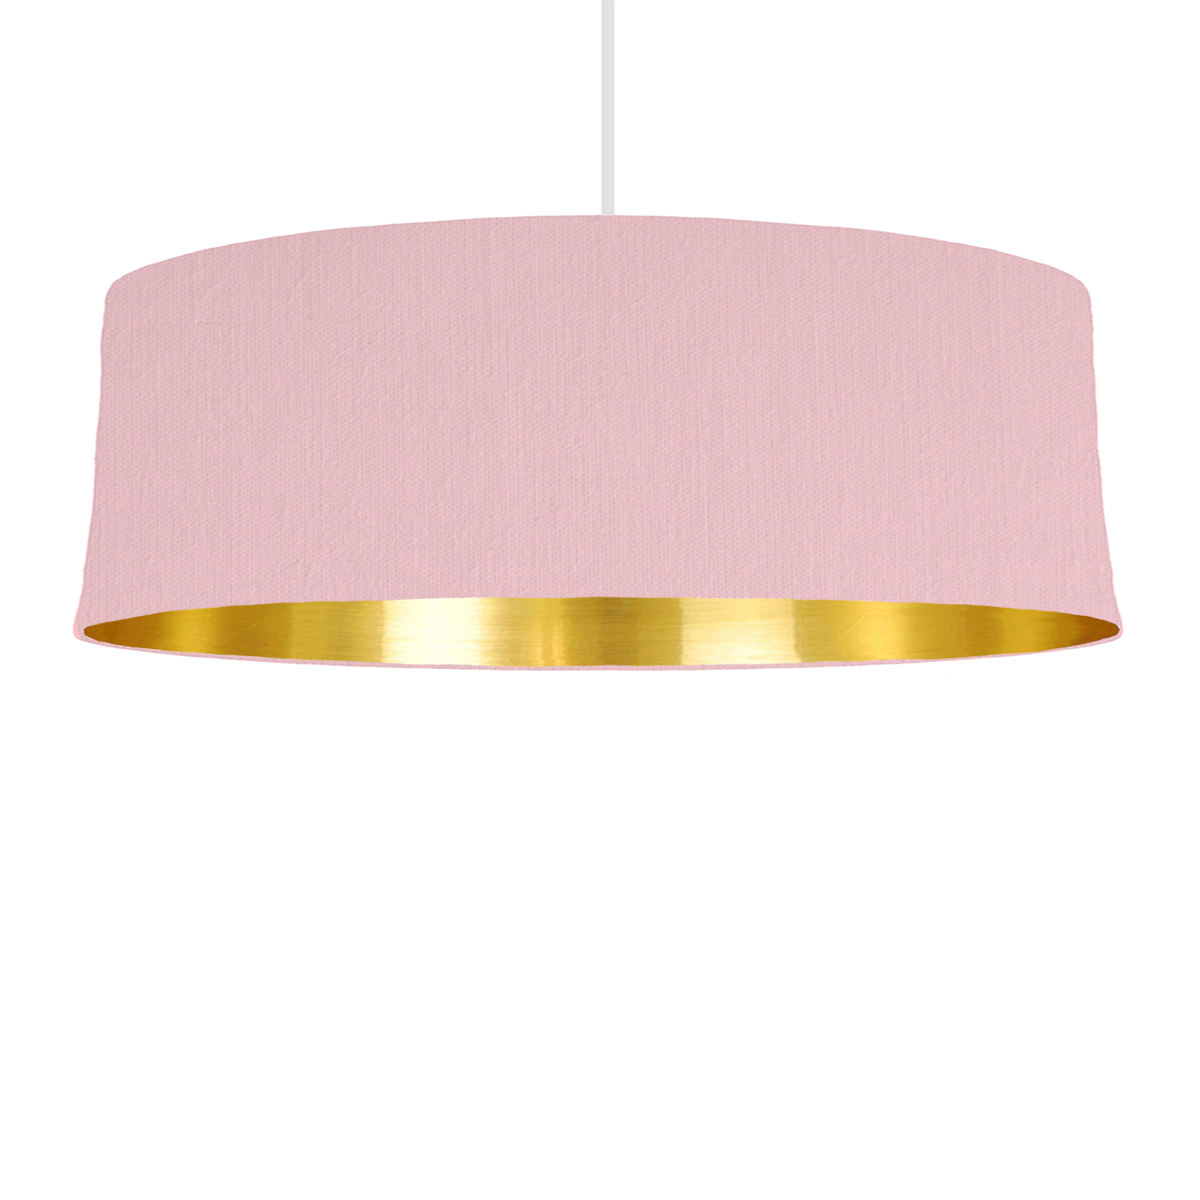 Pink bespoke lampshade with gold mirrored lining bymarie bymarie is a bespoke lampshade designer based in london specializing in custom made lampshades with mix match lining colours aloadofball Image collections